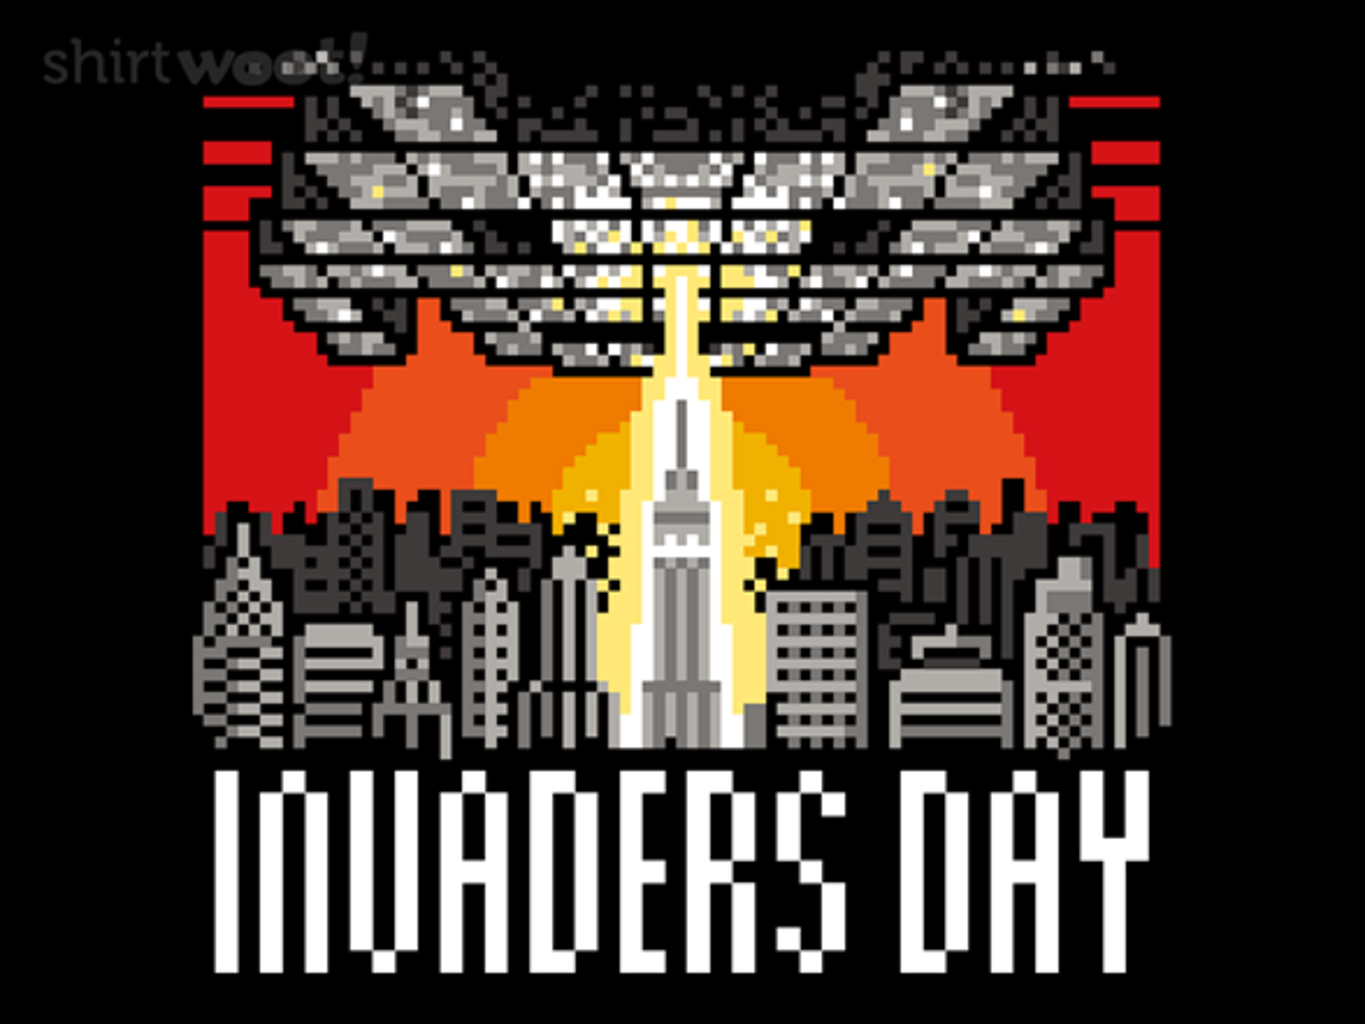 Woot!: Invaders Day